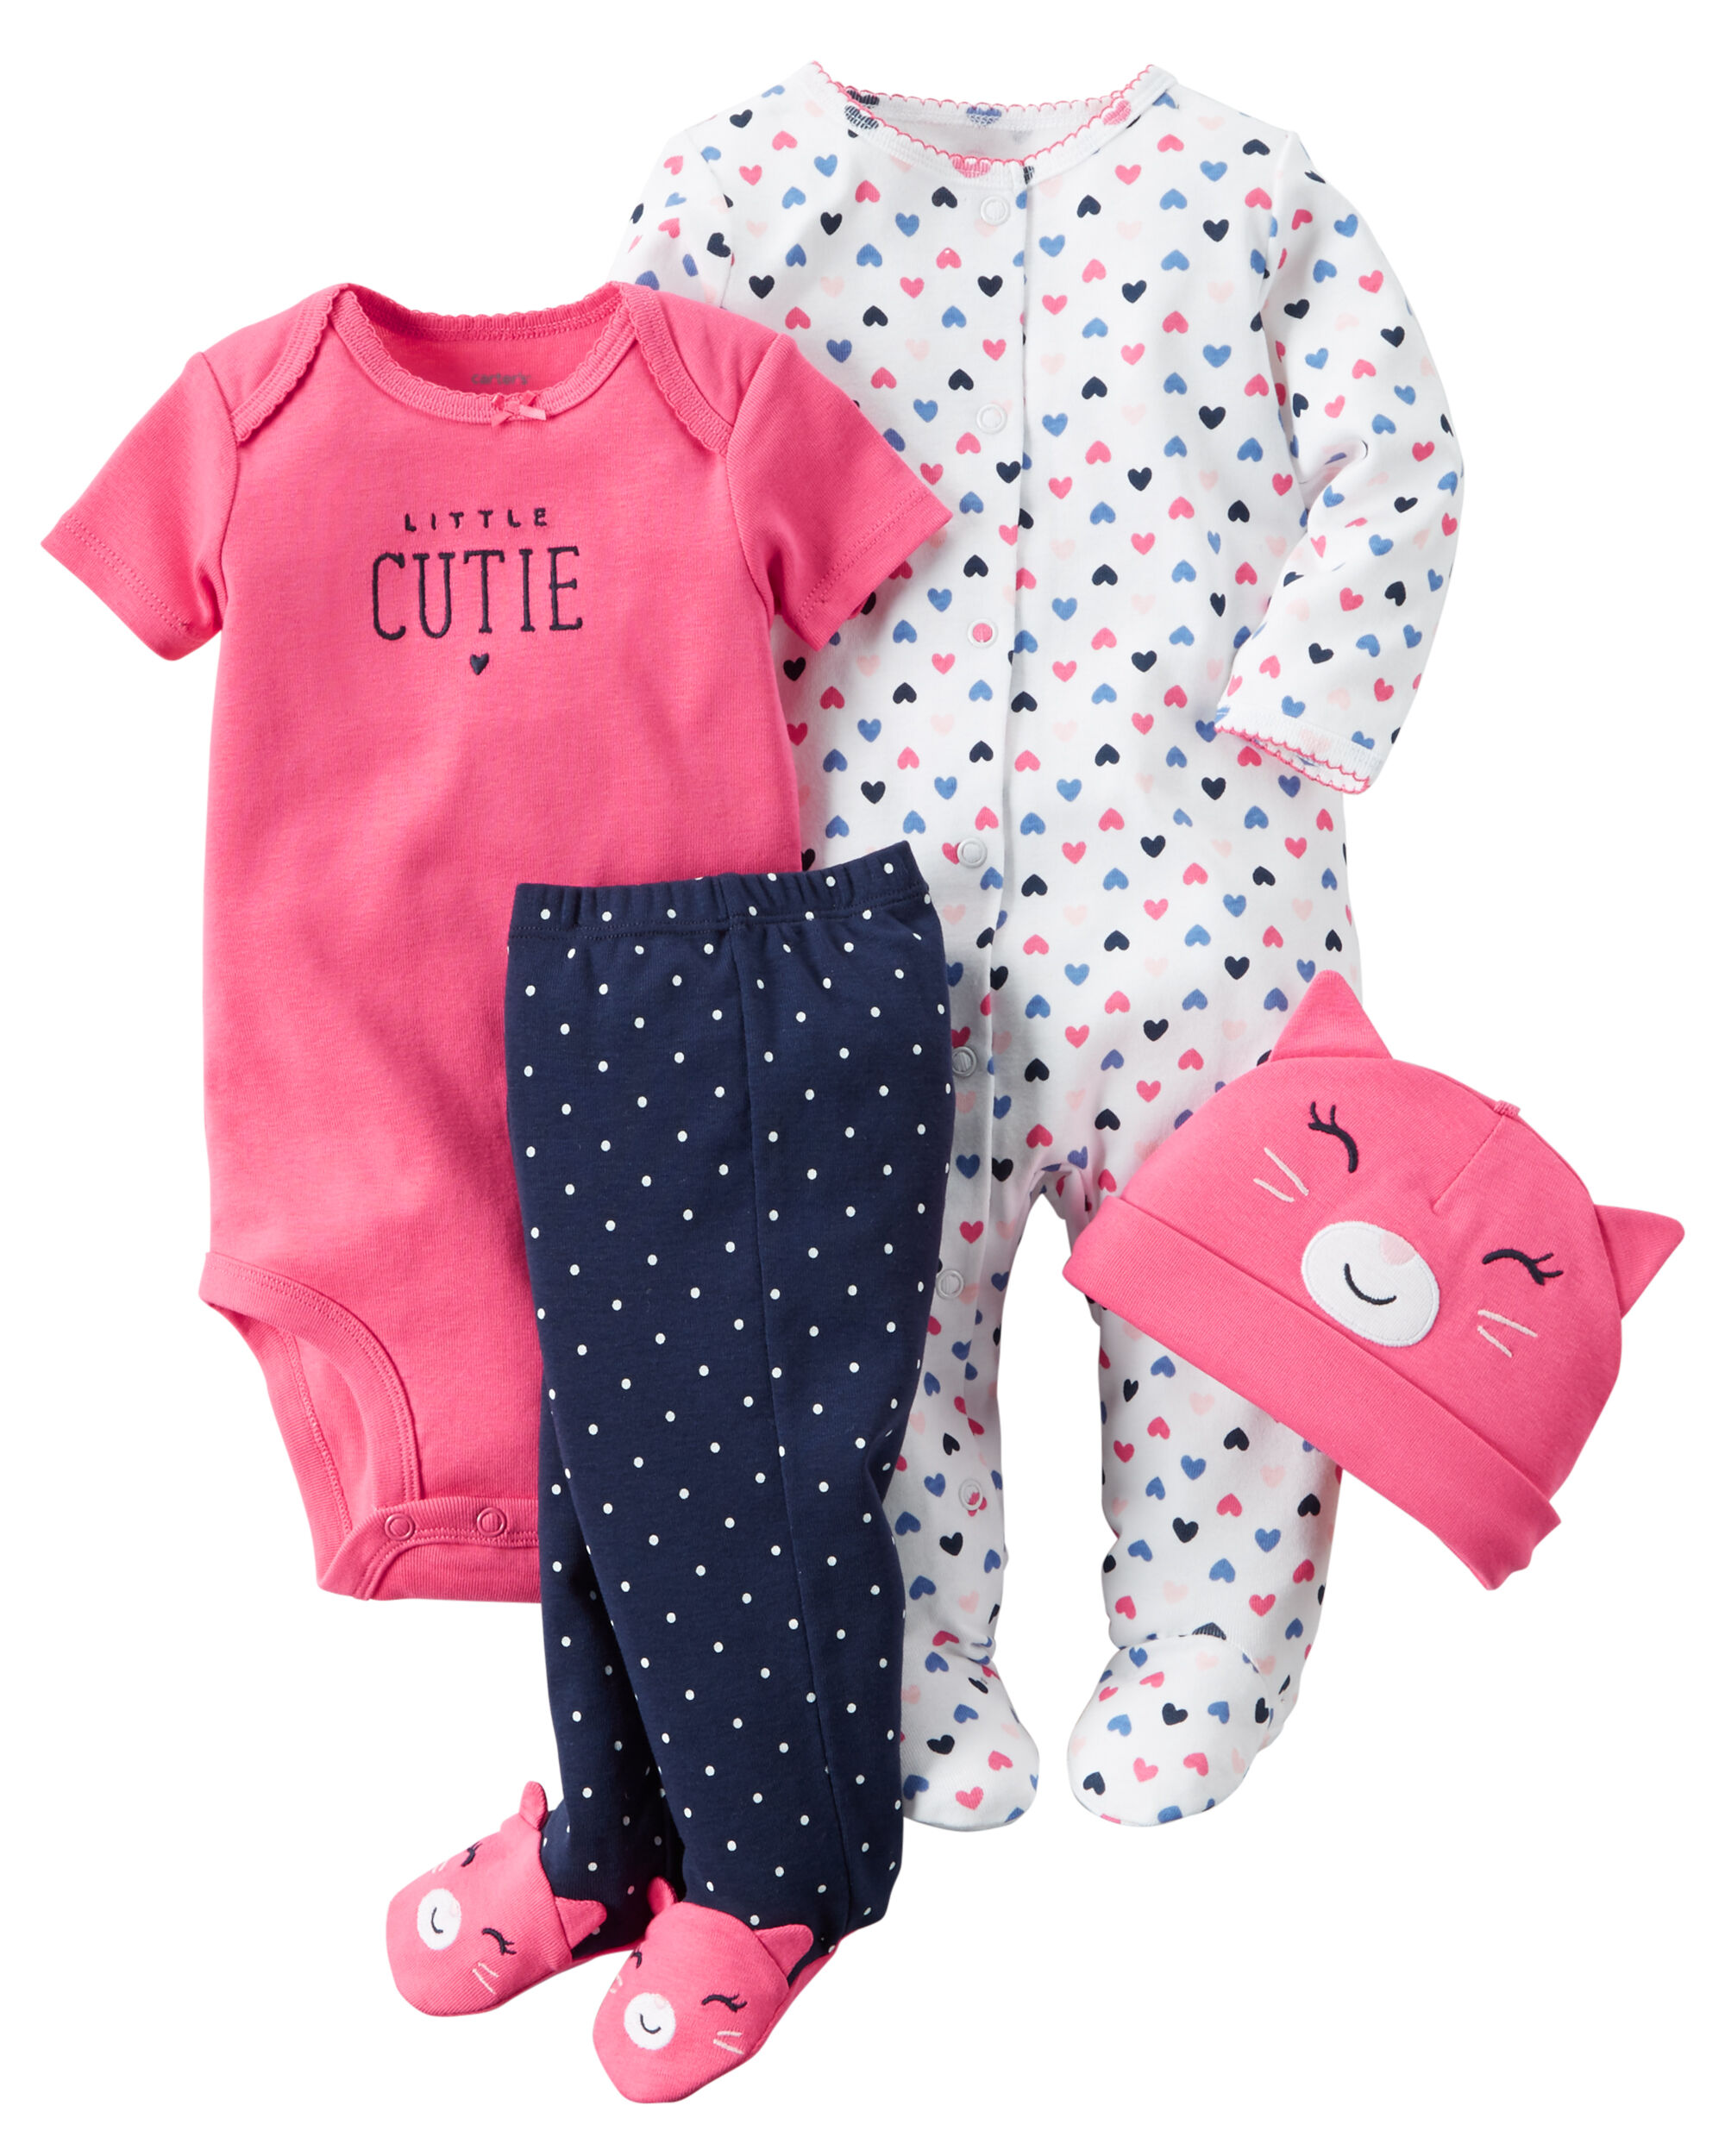 4-Piece Babysoft Take-Me-Home Set | Carters.com